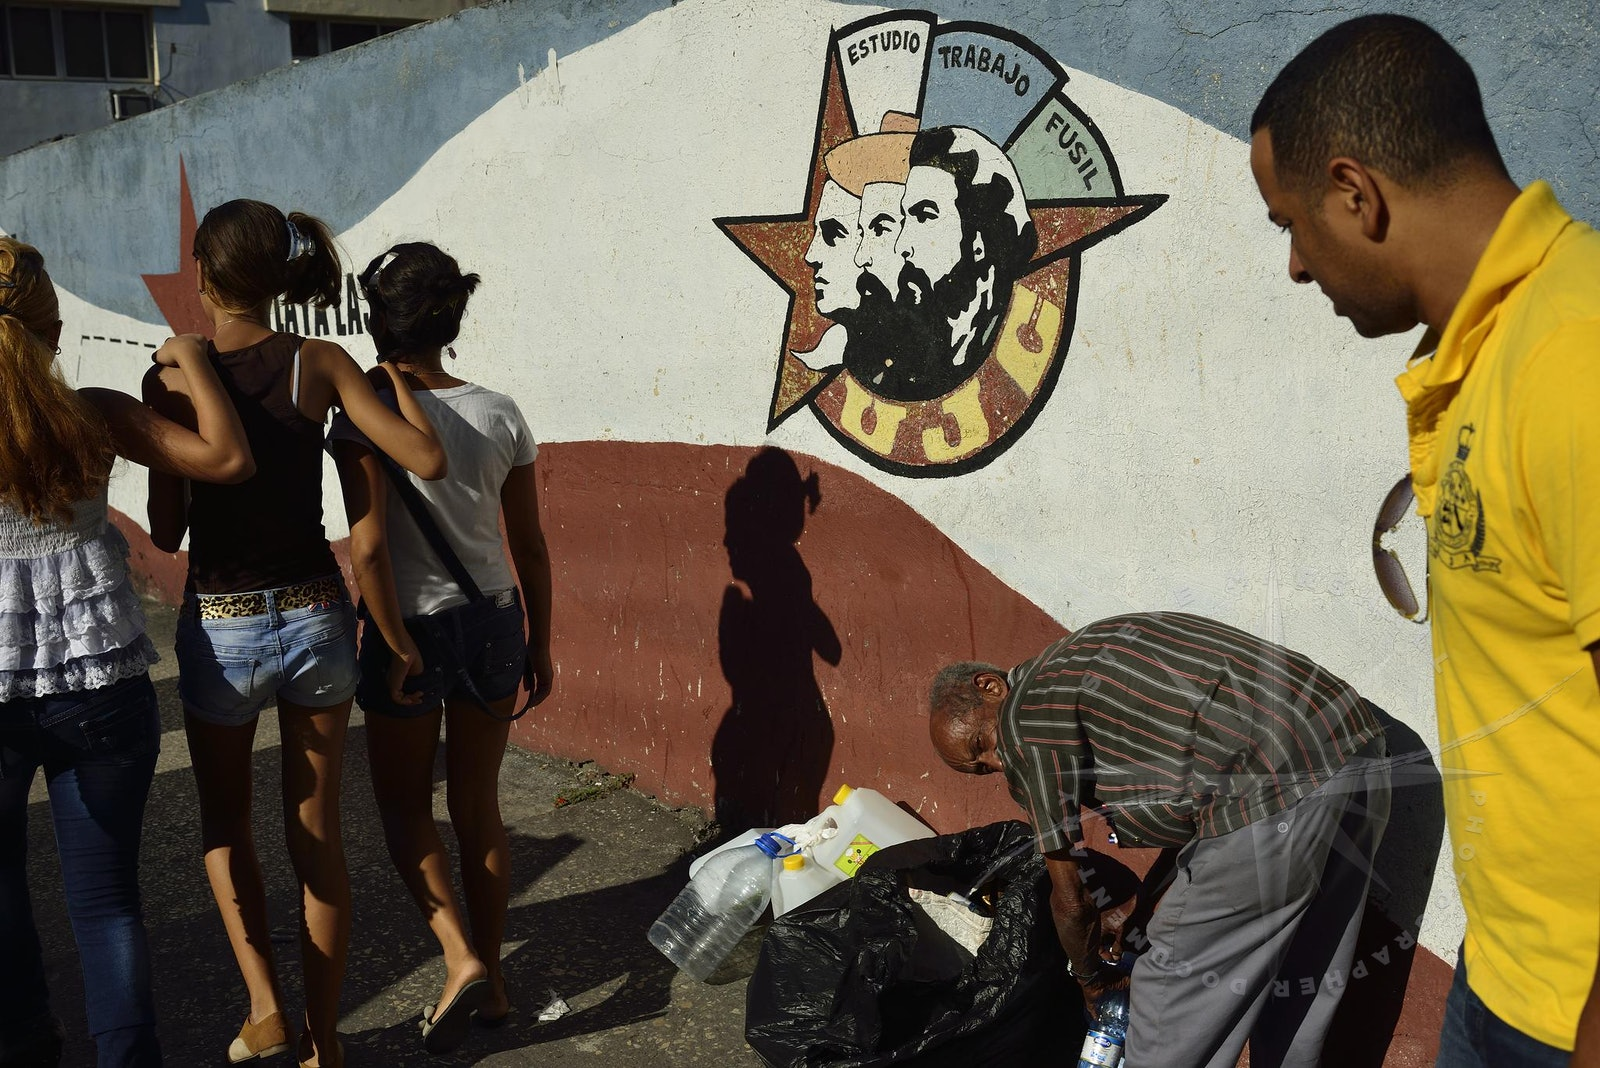 Documentary Havana CUBA - The Cubaneros live in a paradise but they are waiting for Castro